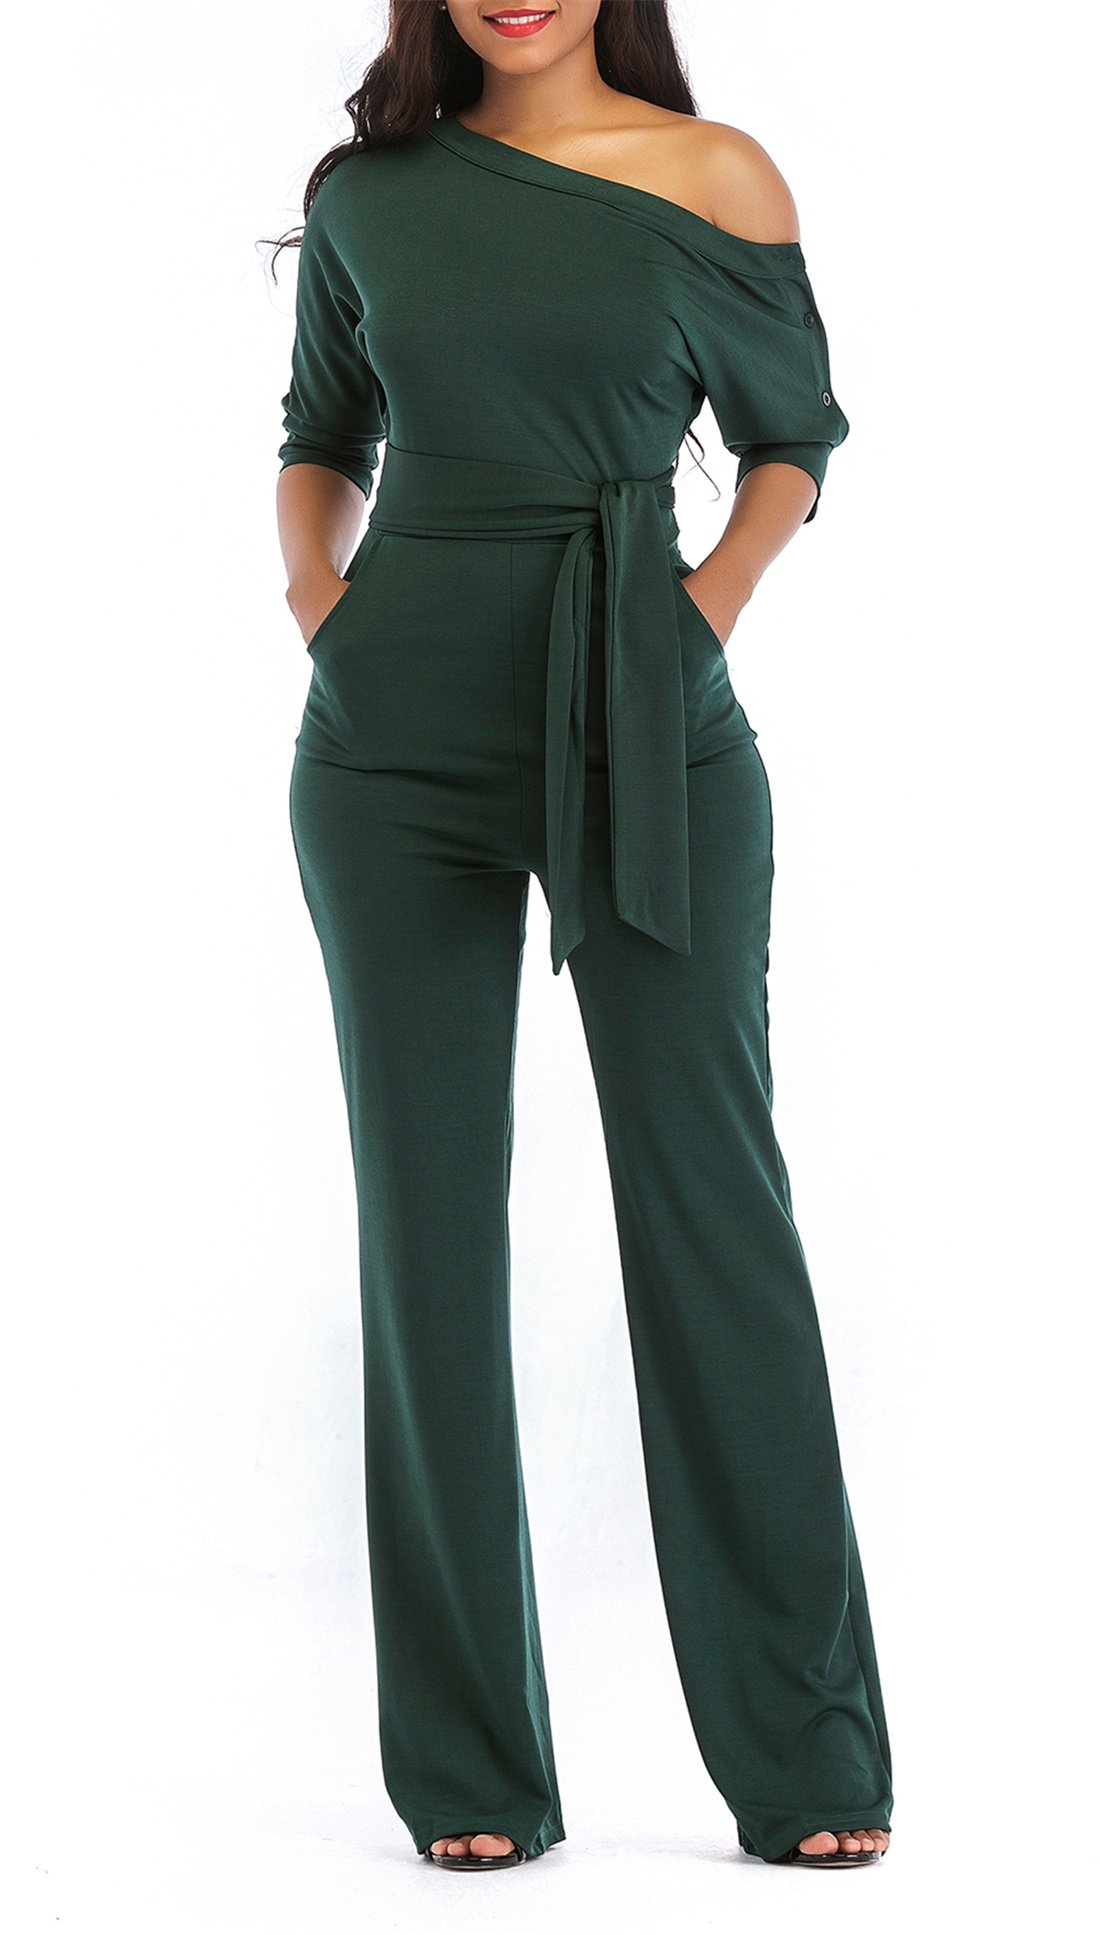 ONLYSHE Women's Sexy One Shoulder Wide Leg Boot Cut Outfit with Belt Army Green X-Large